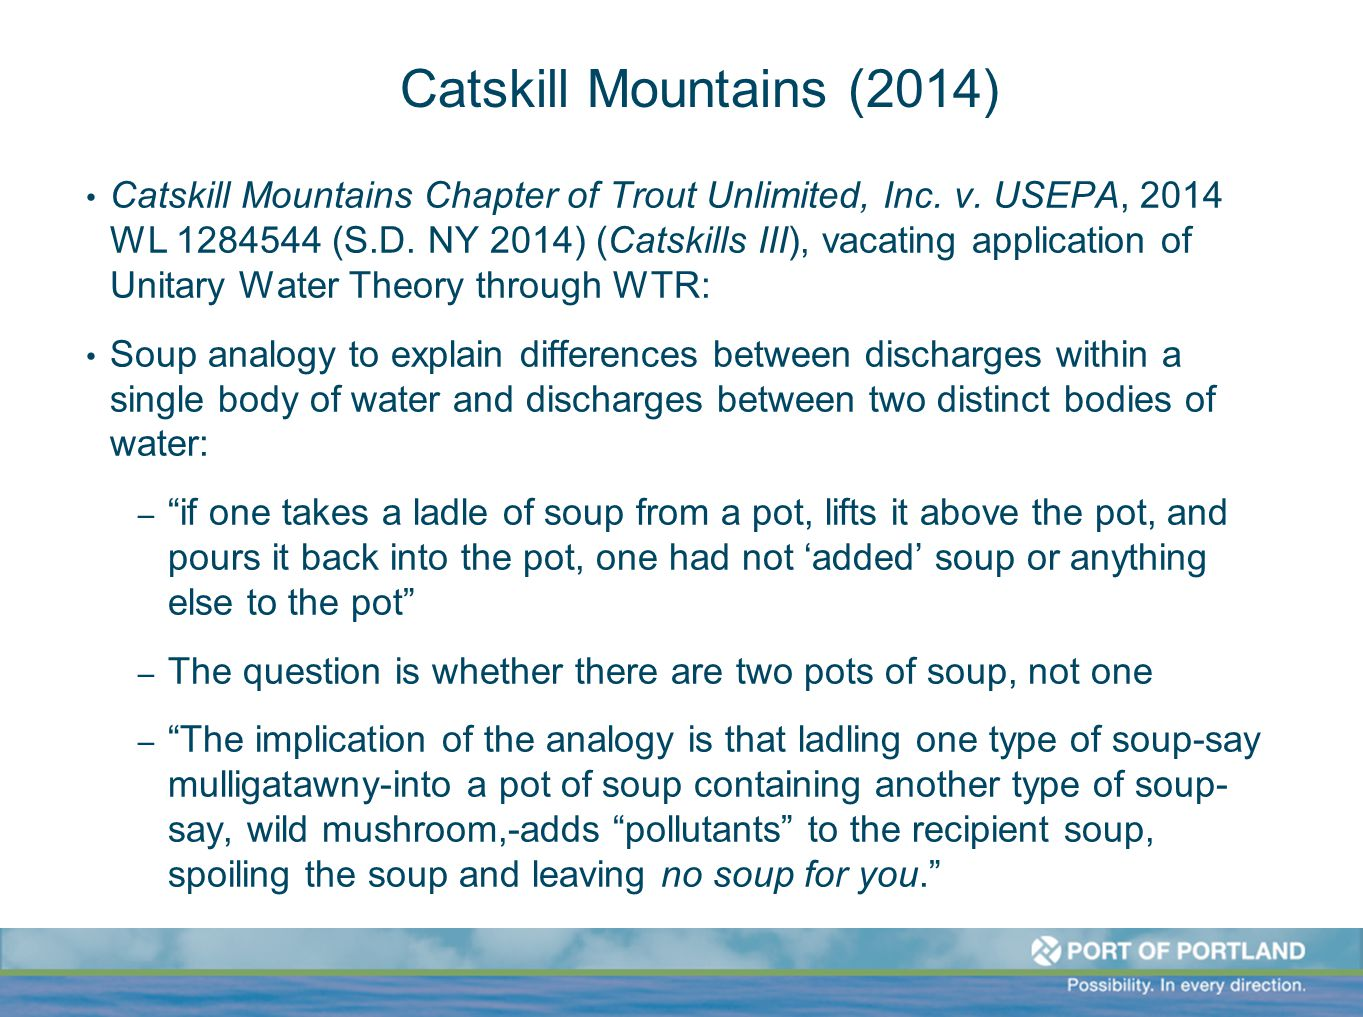 Catskill Mountains (2014) Catskill Mountains Chapter of Trout Unlimited, Inc. v. USEPA, 2014 WL 1284544 (S.D. NY 2014) (Catskills III), vacating appli